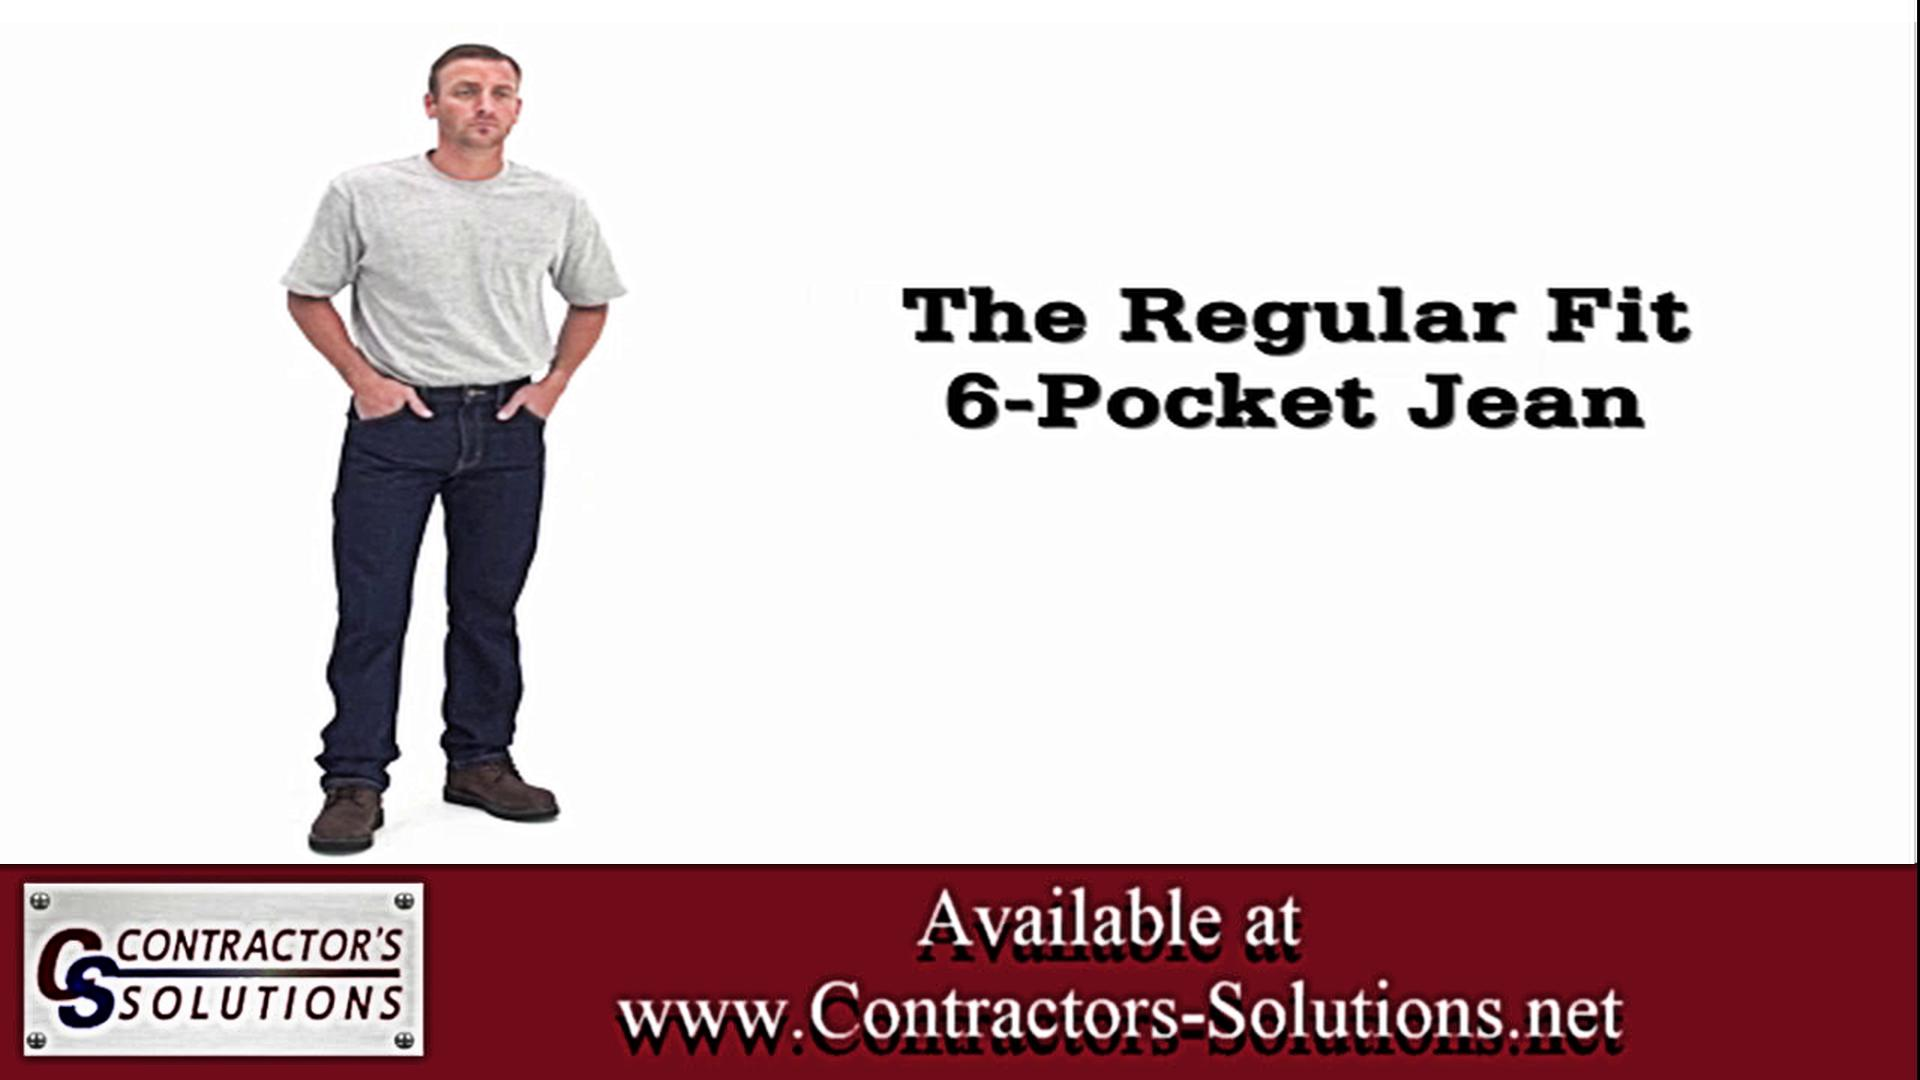 Regular Fit 6 Pocket Jeans